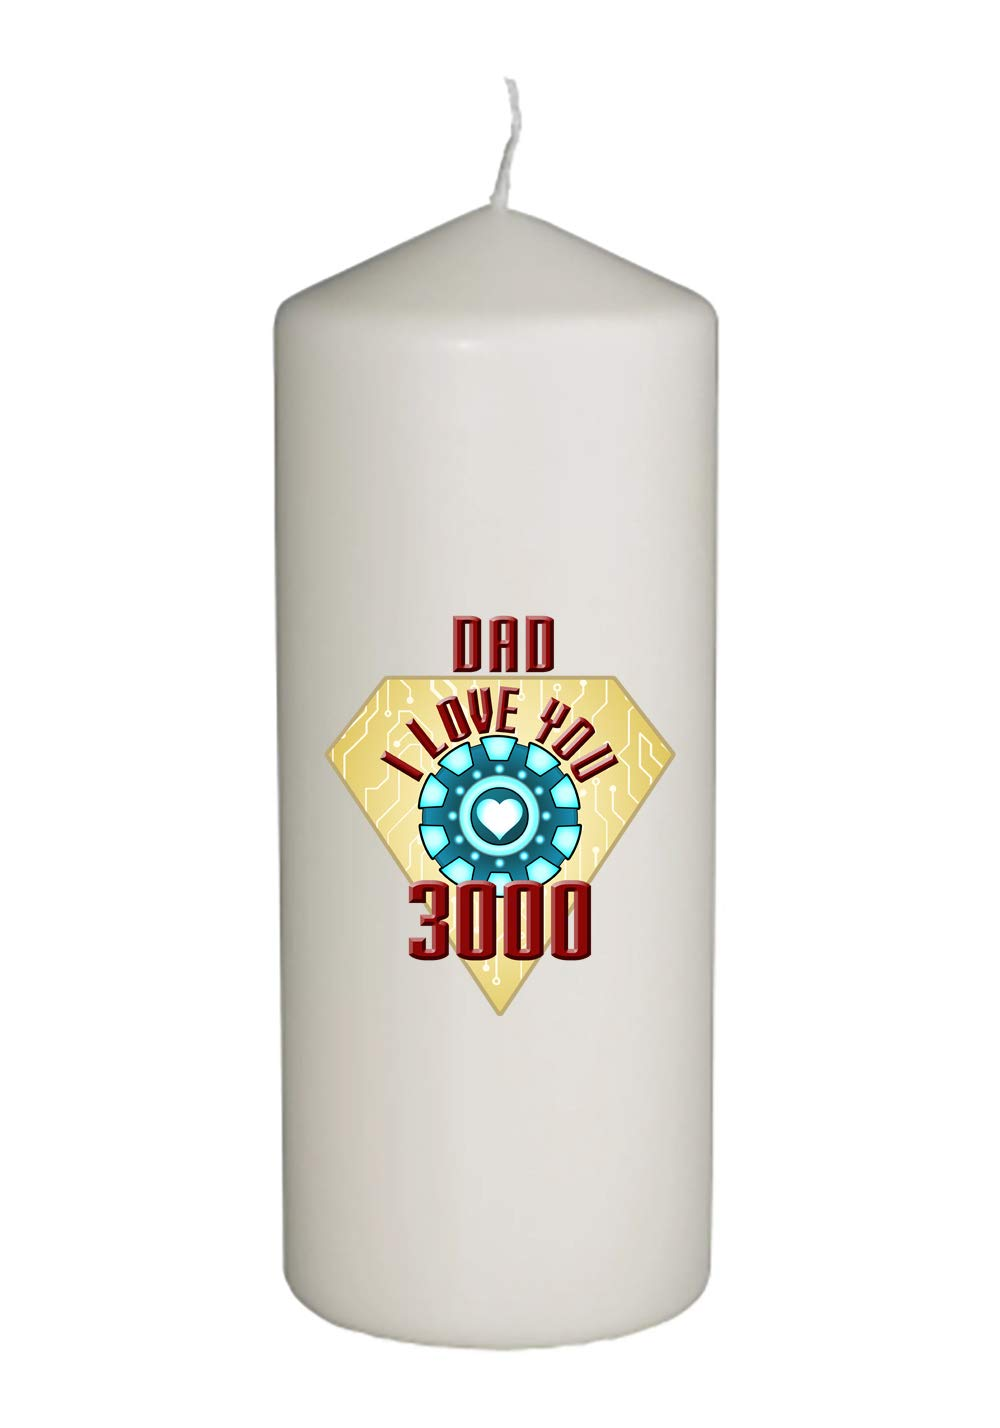 Dad I Love You 3000 Metal Heart Reactor Film Parody Father's Day in Full Color Unity Candle - Wedding, Baptism, Funeral, Special Event Decoration (6 inches Tall)